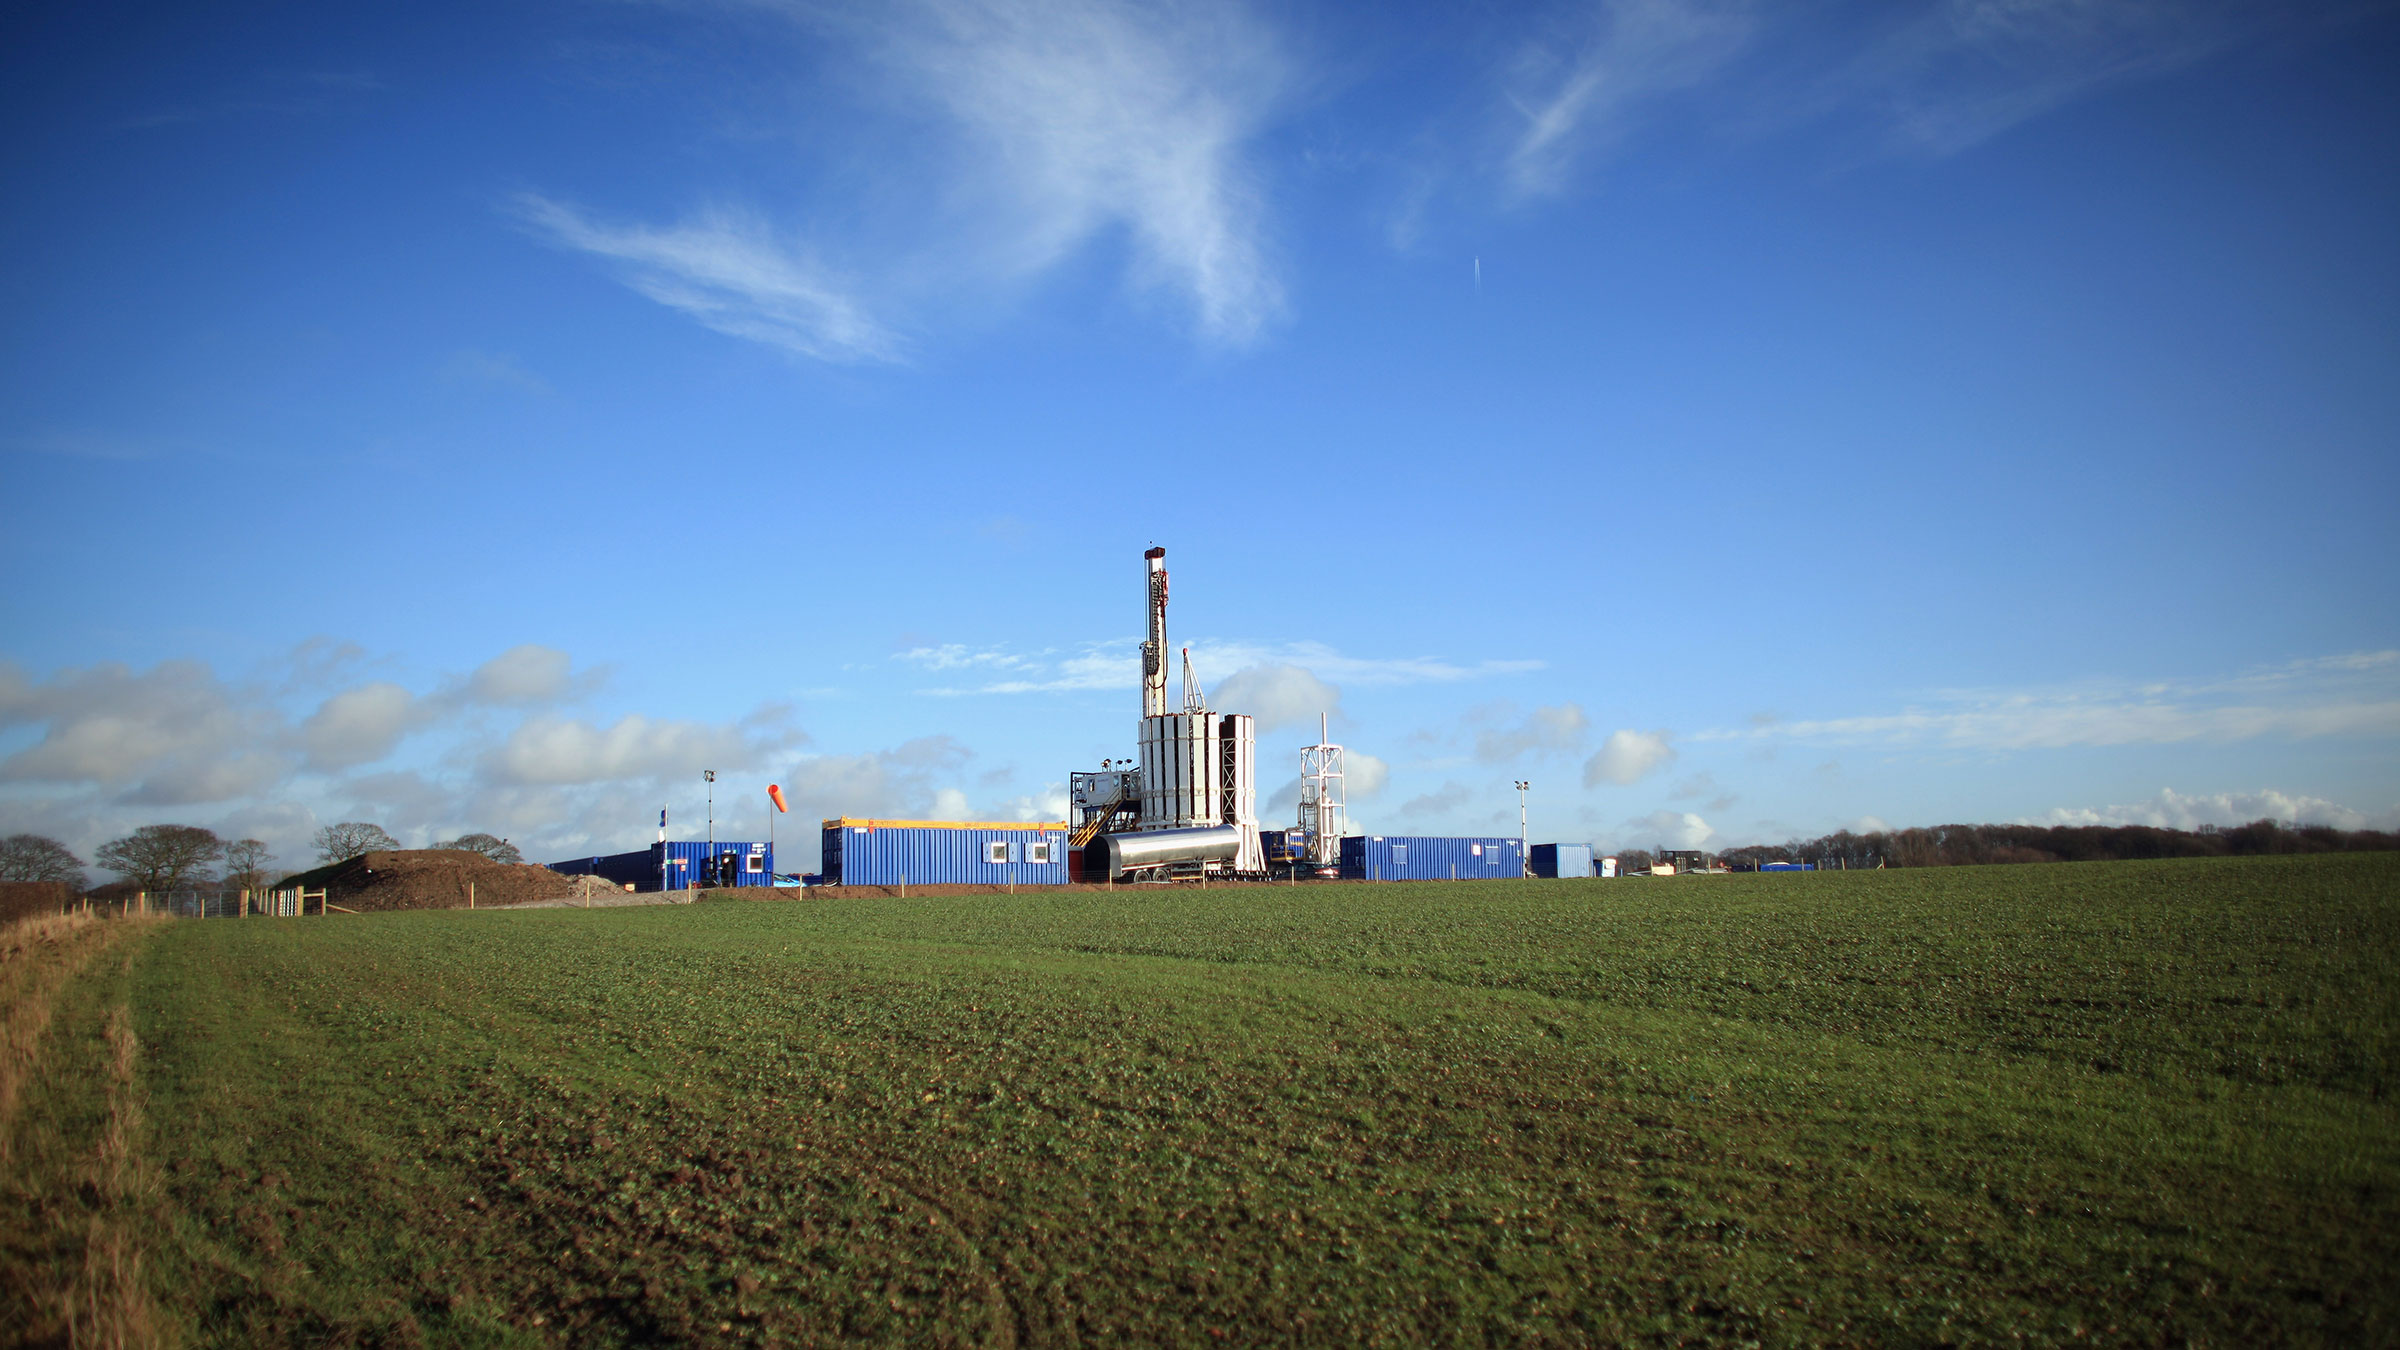 A drilling rig in Blackpool, England.